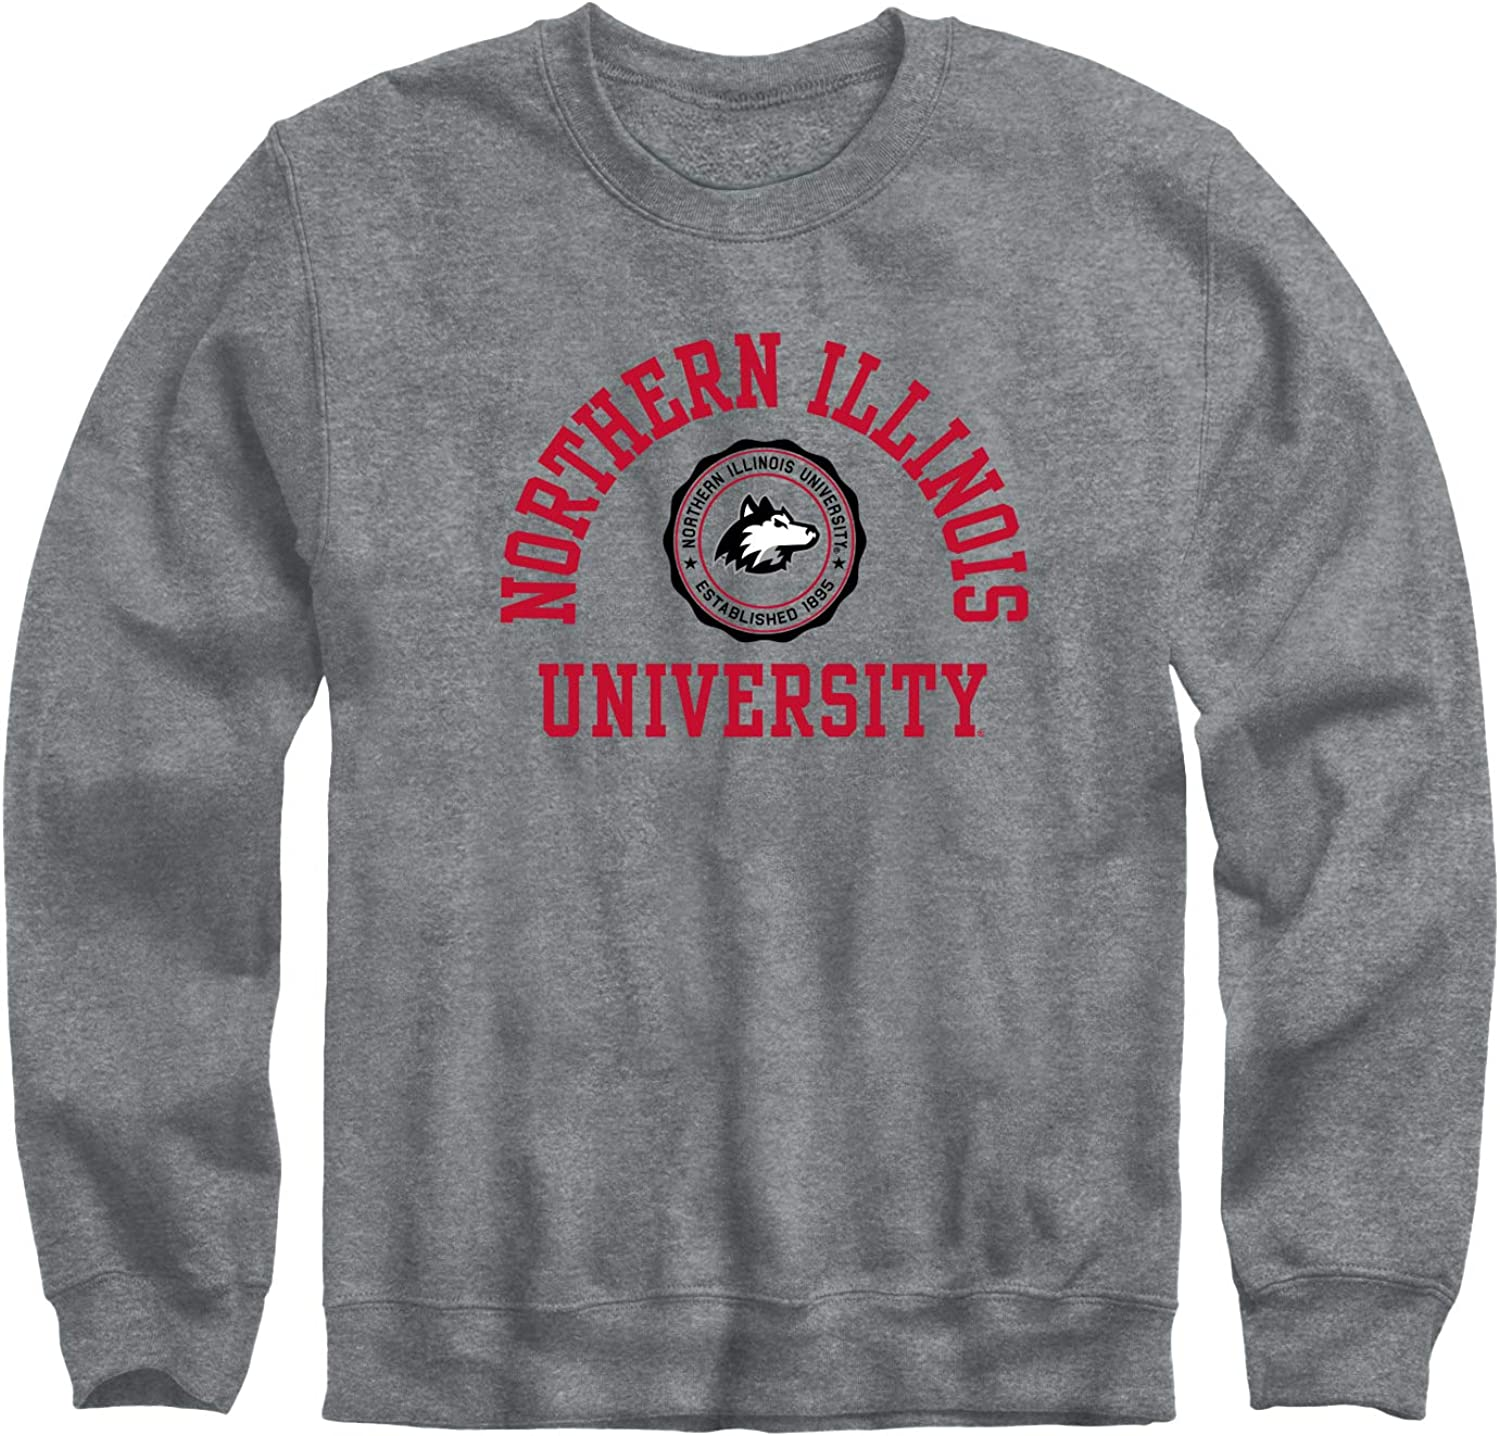 Ivysport Crewneck Sweatshirt Heritage Logo Grey NCAA Colleges and Universities Cotton//Poly Blend